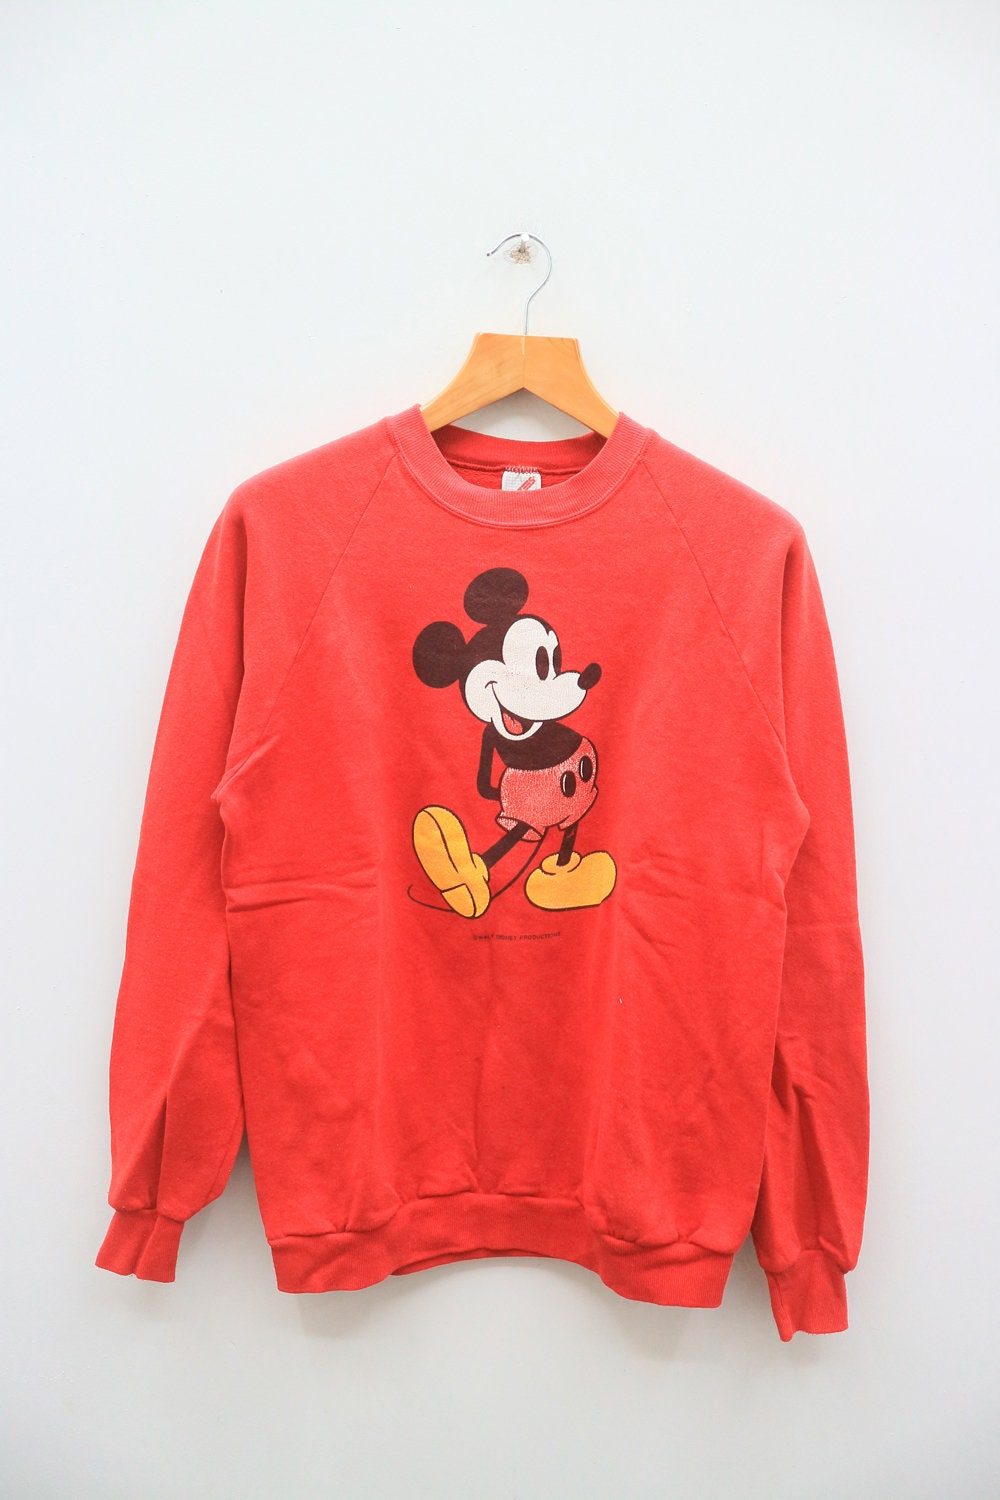 Vintage MICKEY MOUSE Disney Cartoon Animation Red Sweatshirt Sweater Size M 9j6Gam